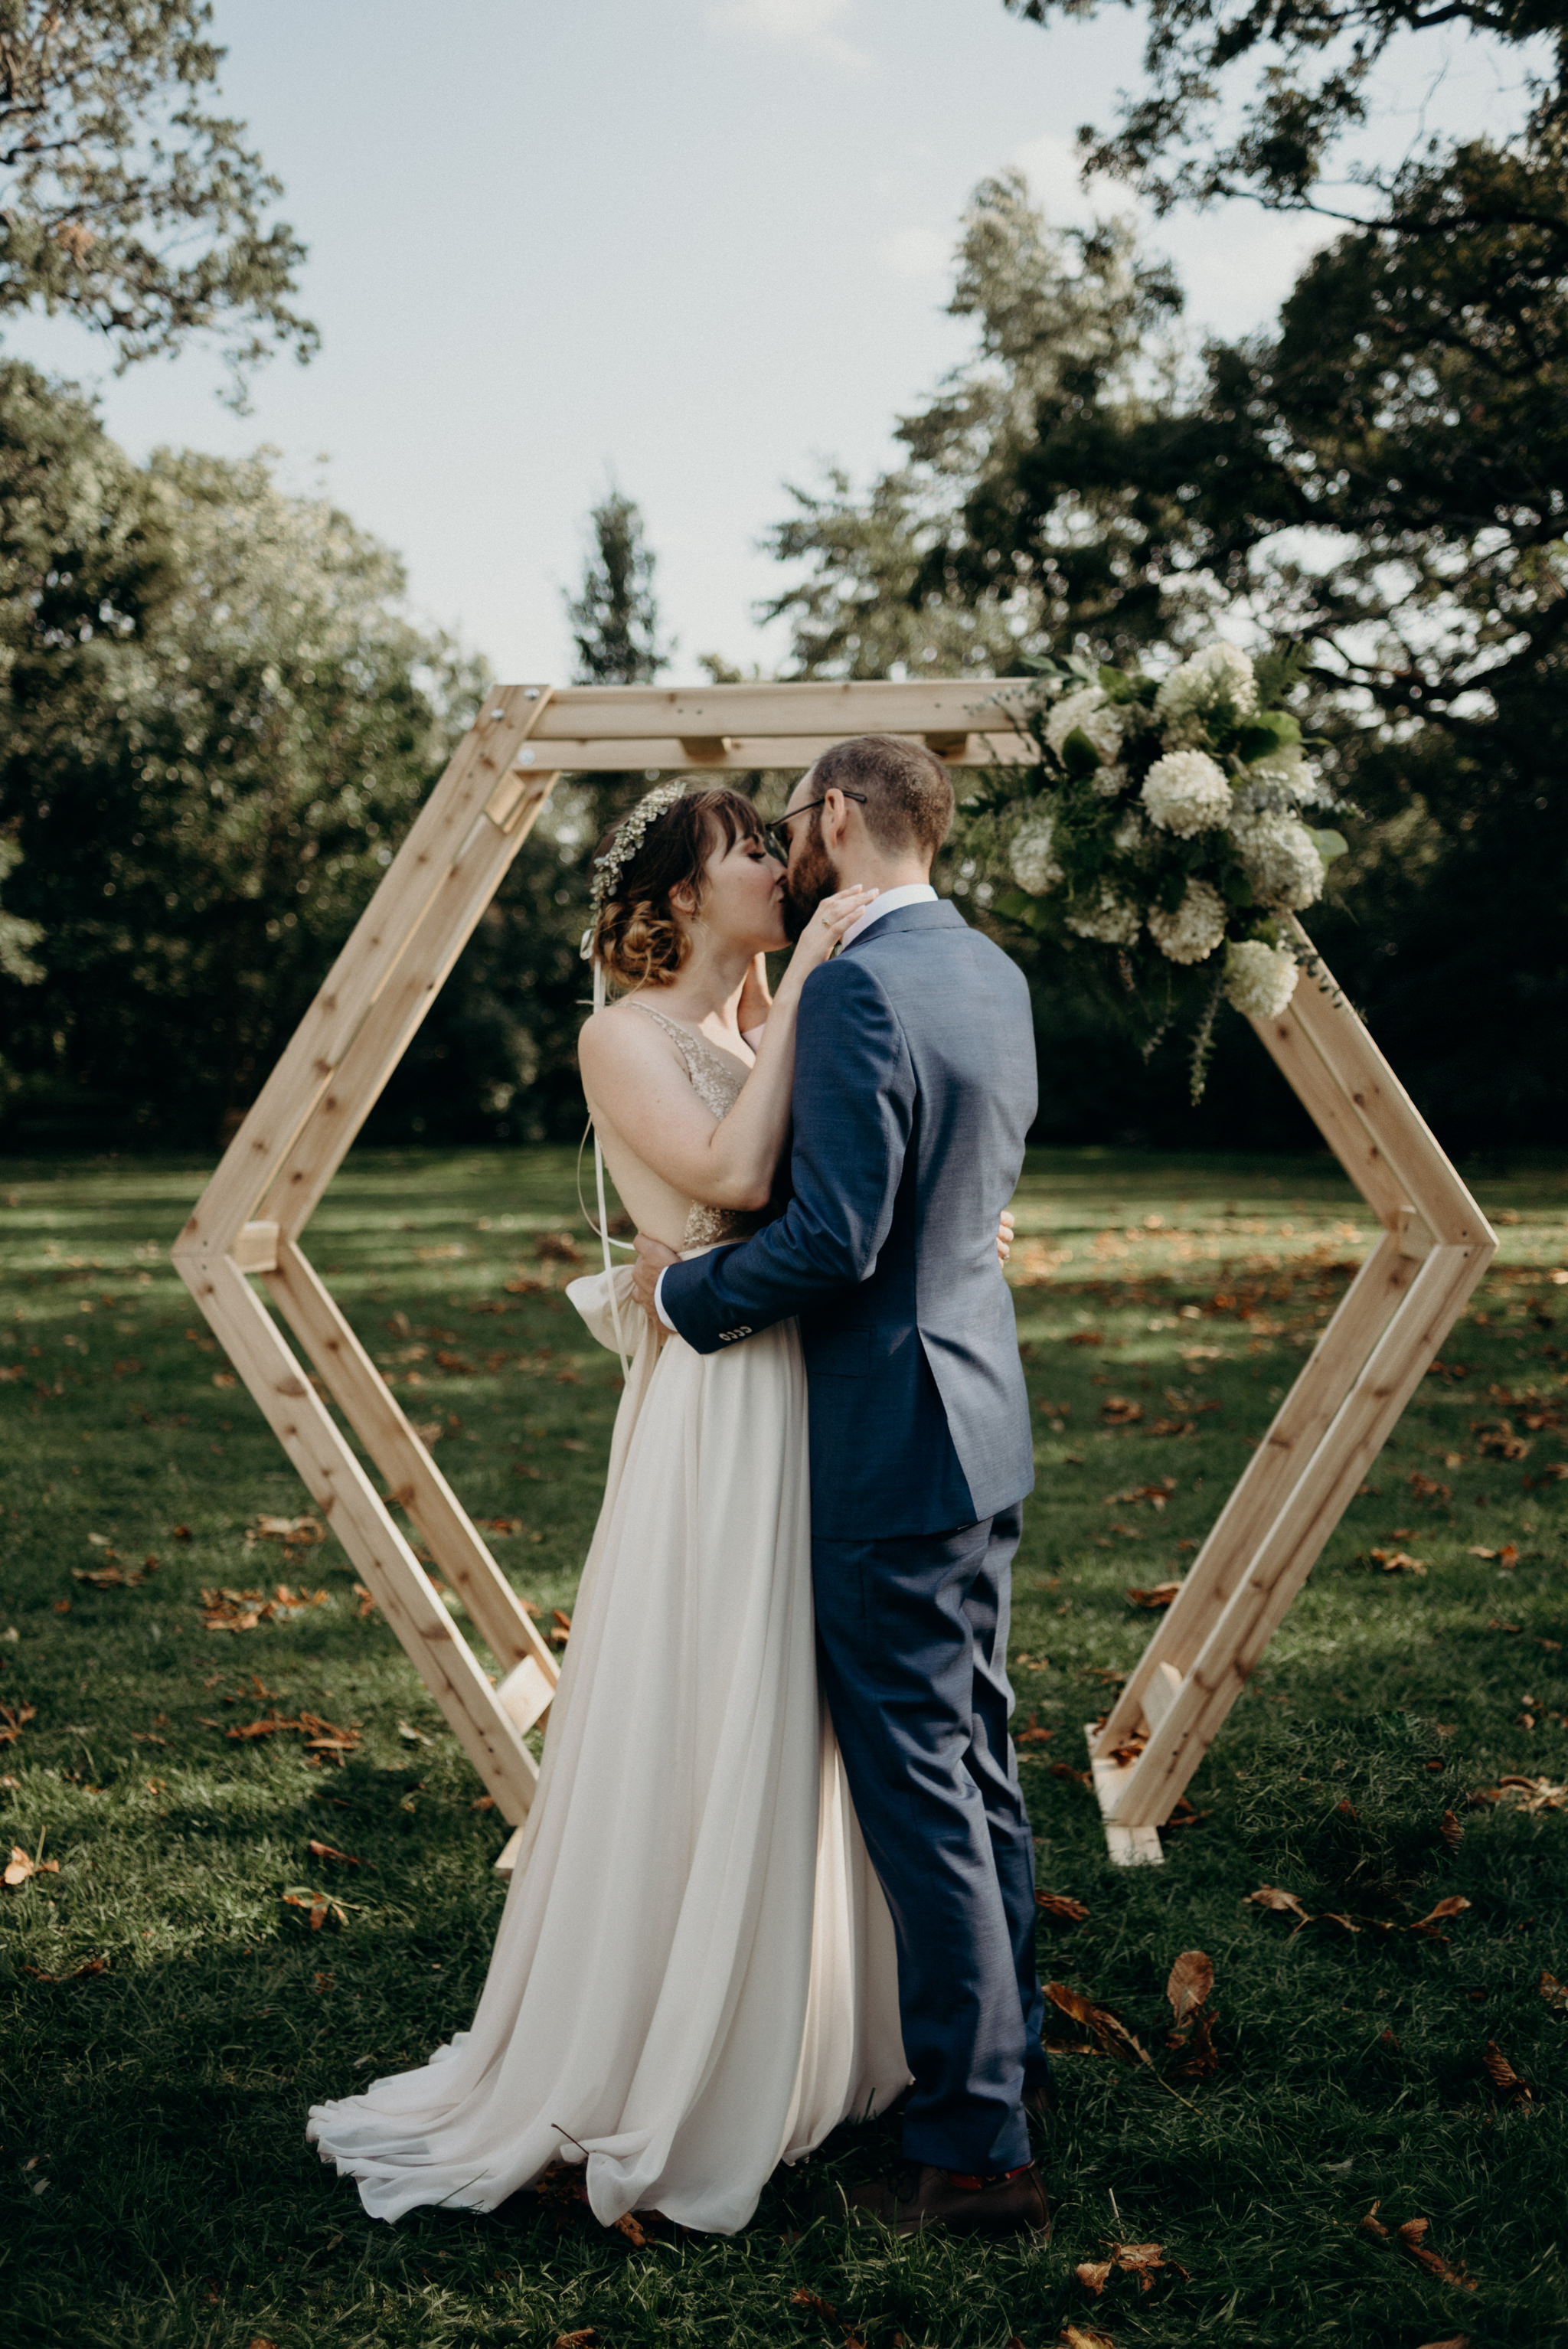 first kiss in front of wood hexagon backdrop during outdoor ceremony